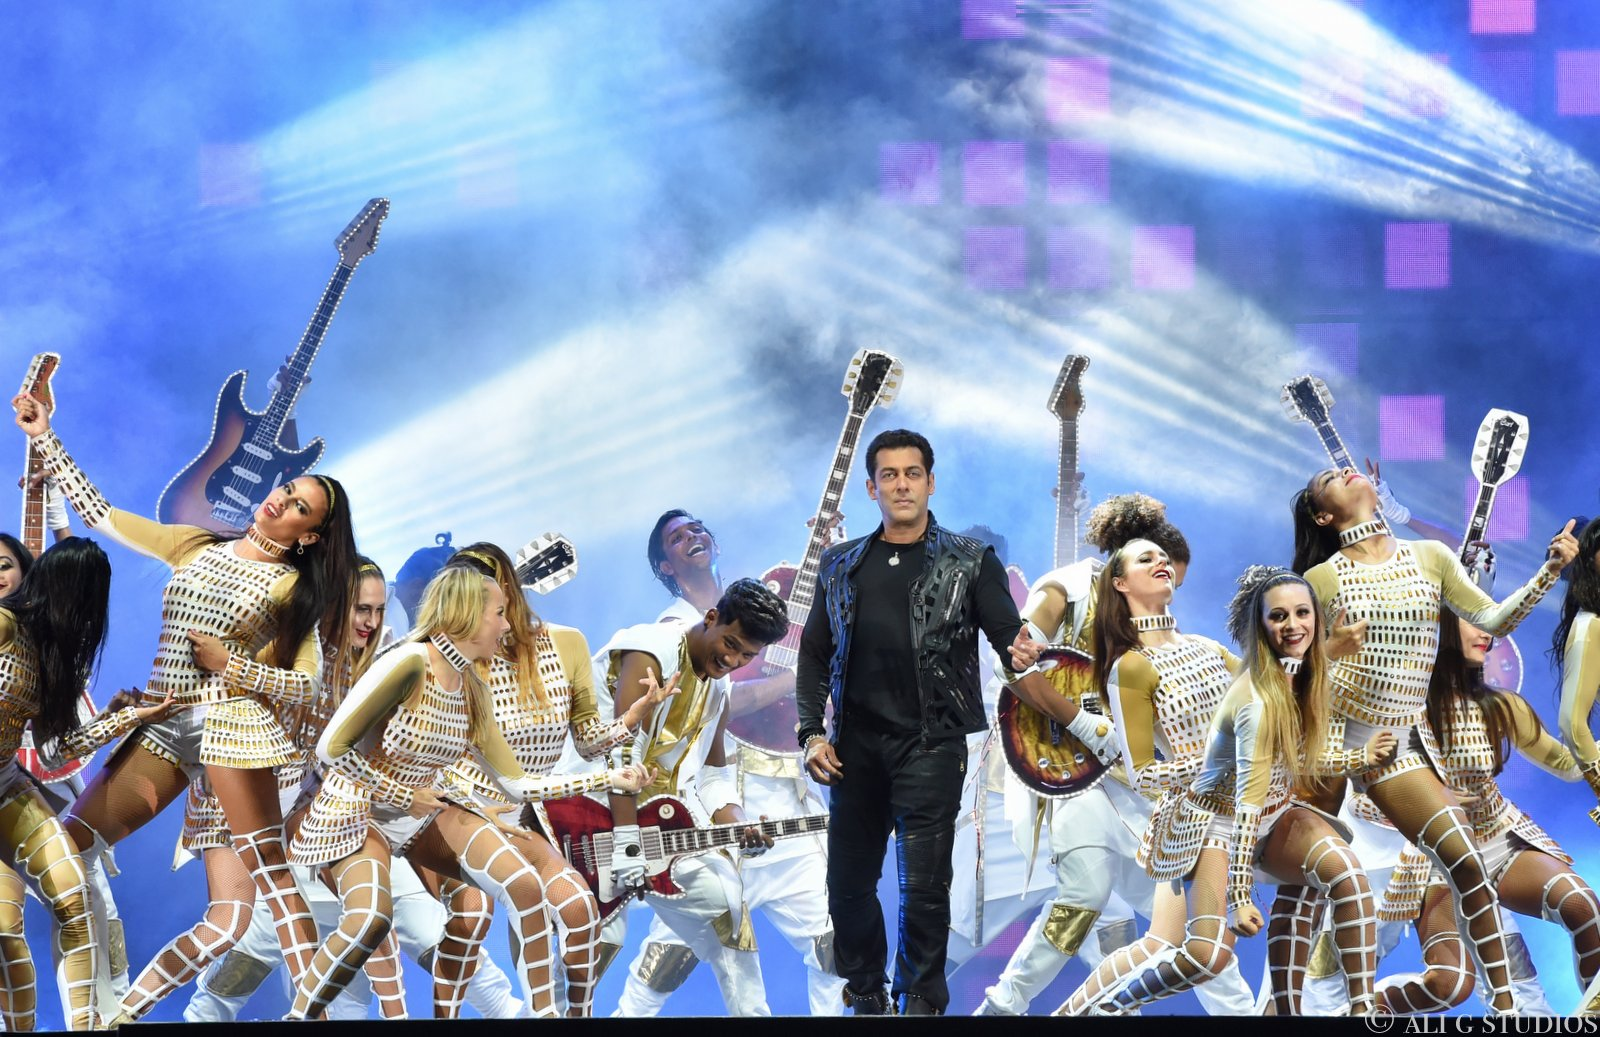 Hong Kong celebrity photographer, hong kong event photographer, bollywood superstars hong kong, dabangg tour, hong kong photographer, salman khan, akshay kumar, hong kong event, ali g studios, ali ghorbani photographer